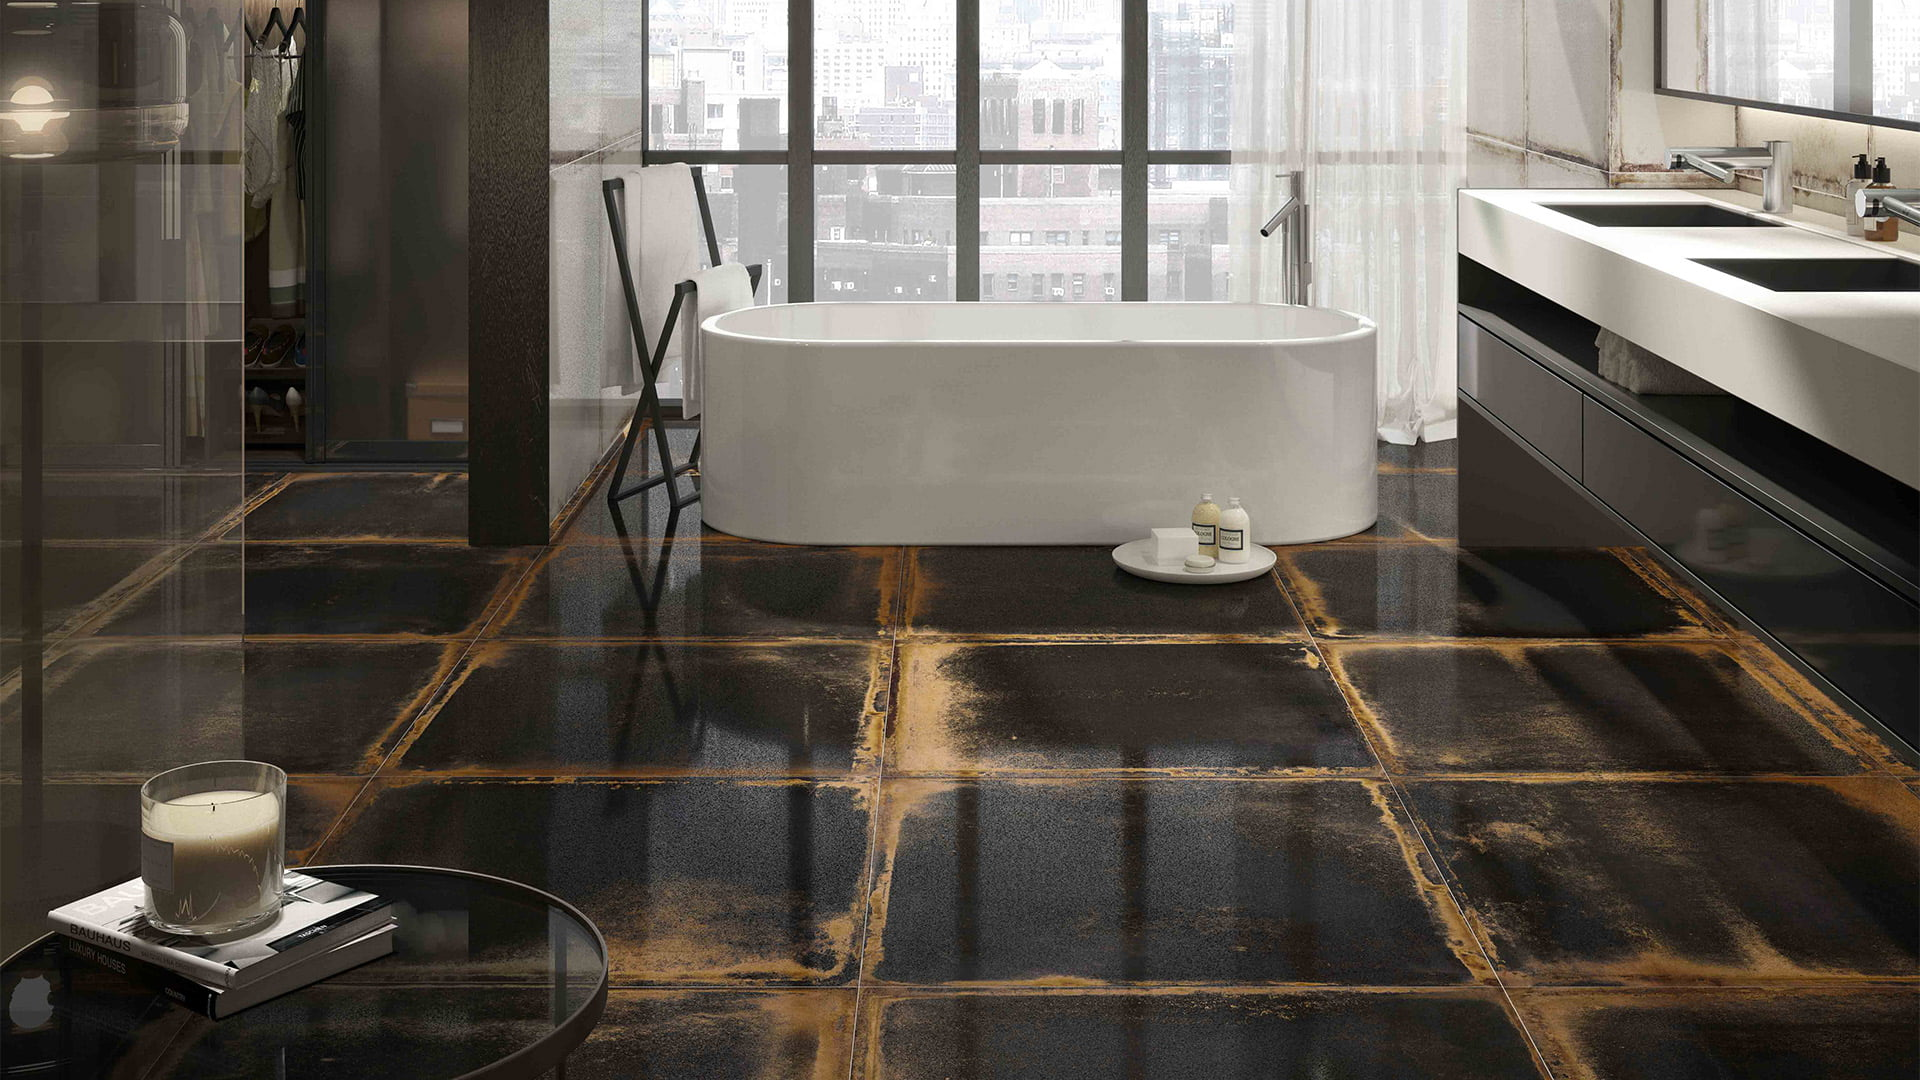 Italgres Porcelain Stone Wood Marble Concrete Tiles In Miami,Best Cordless Drill Under 100